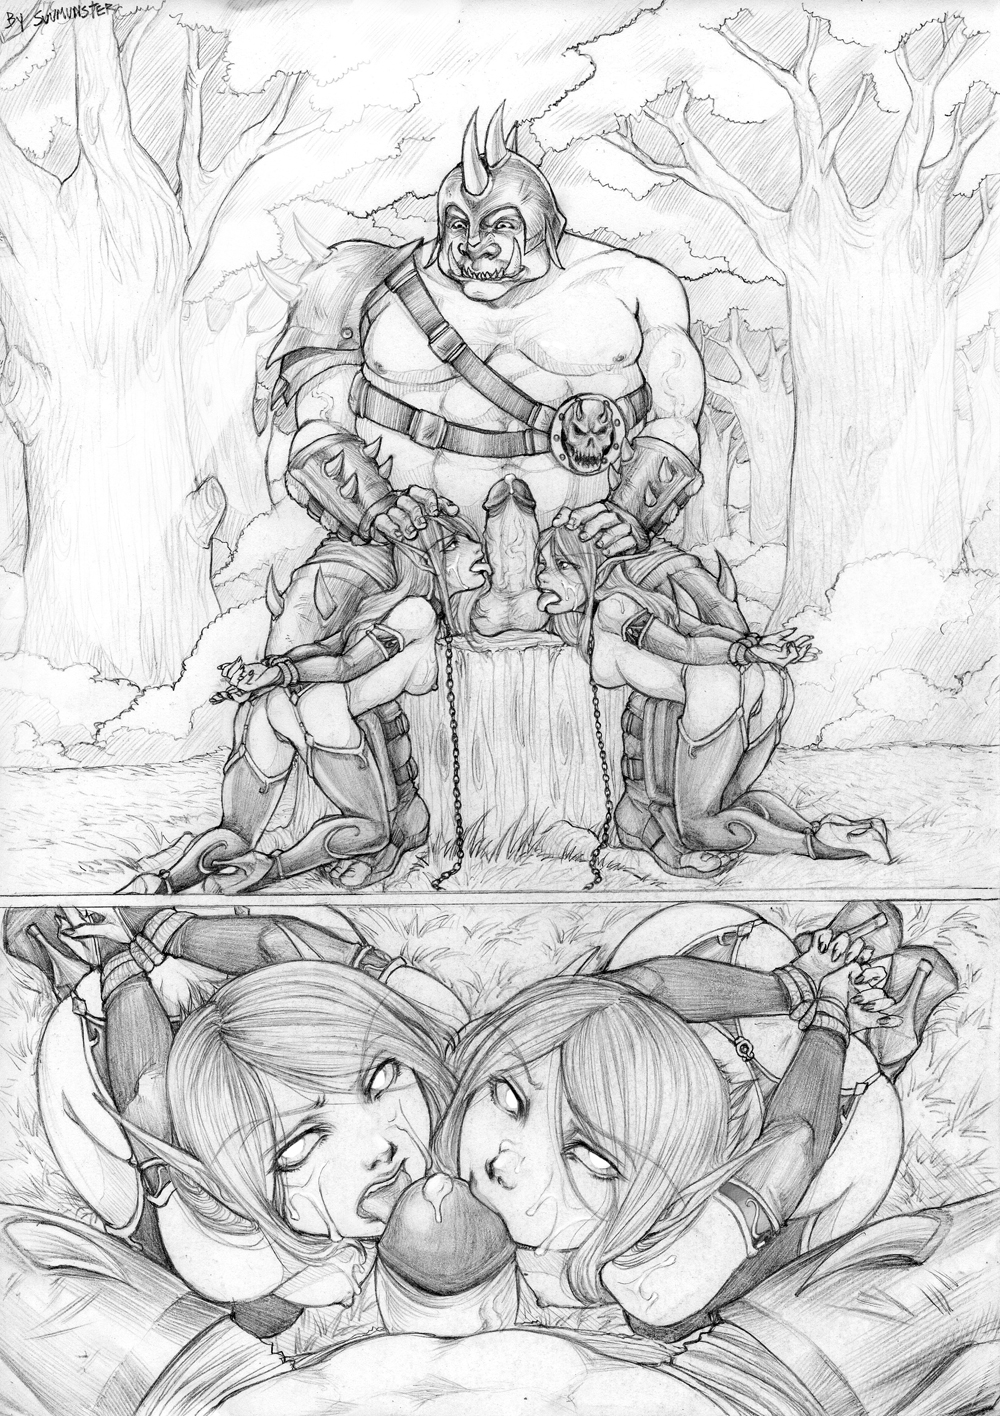 World of warcraft nude manga sex scenes